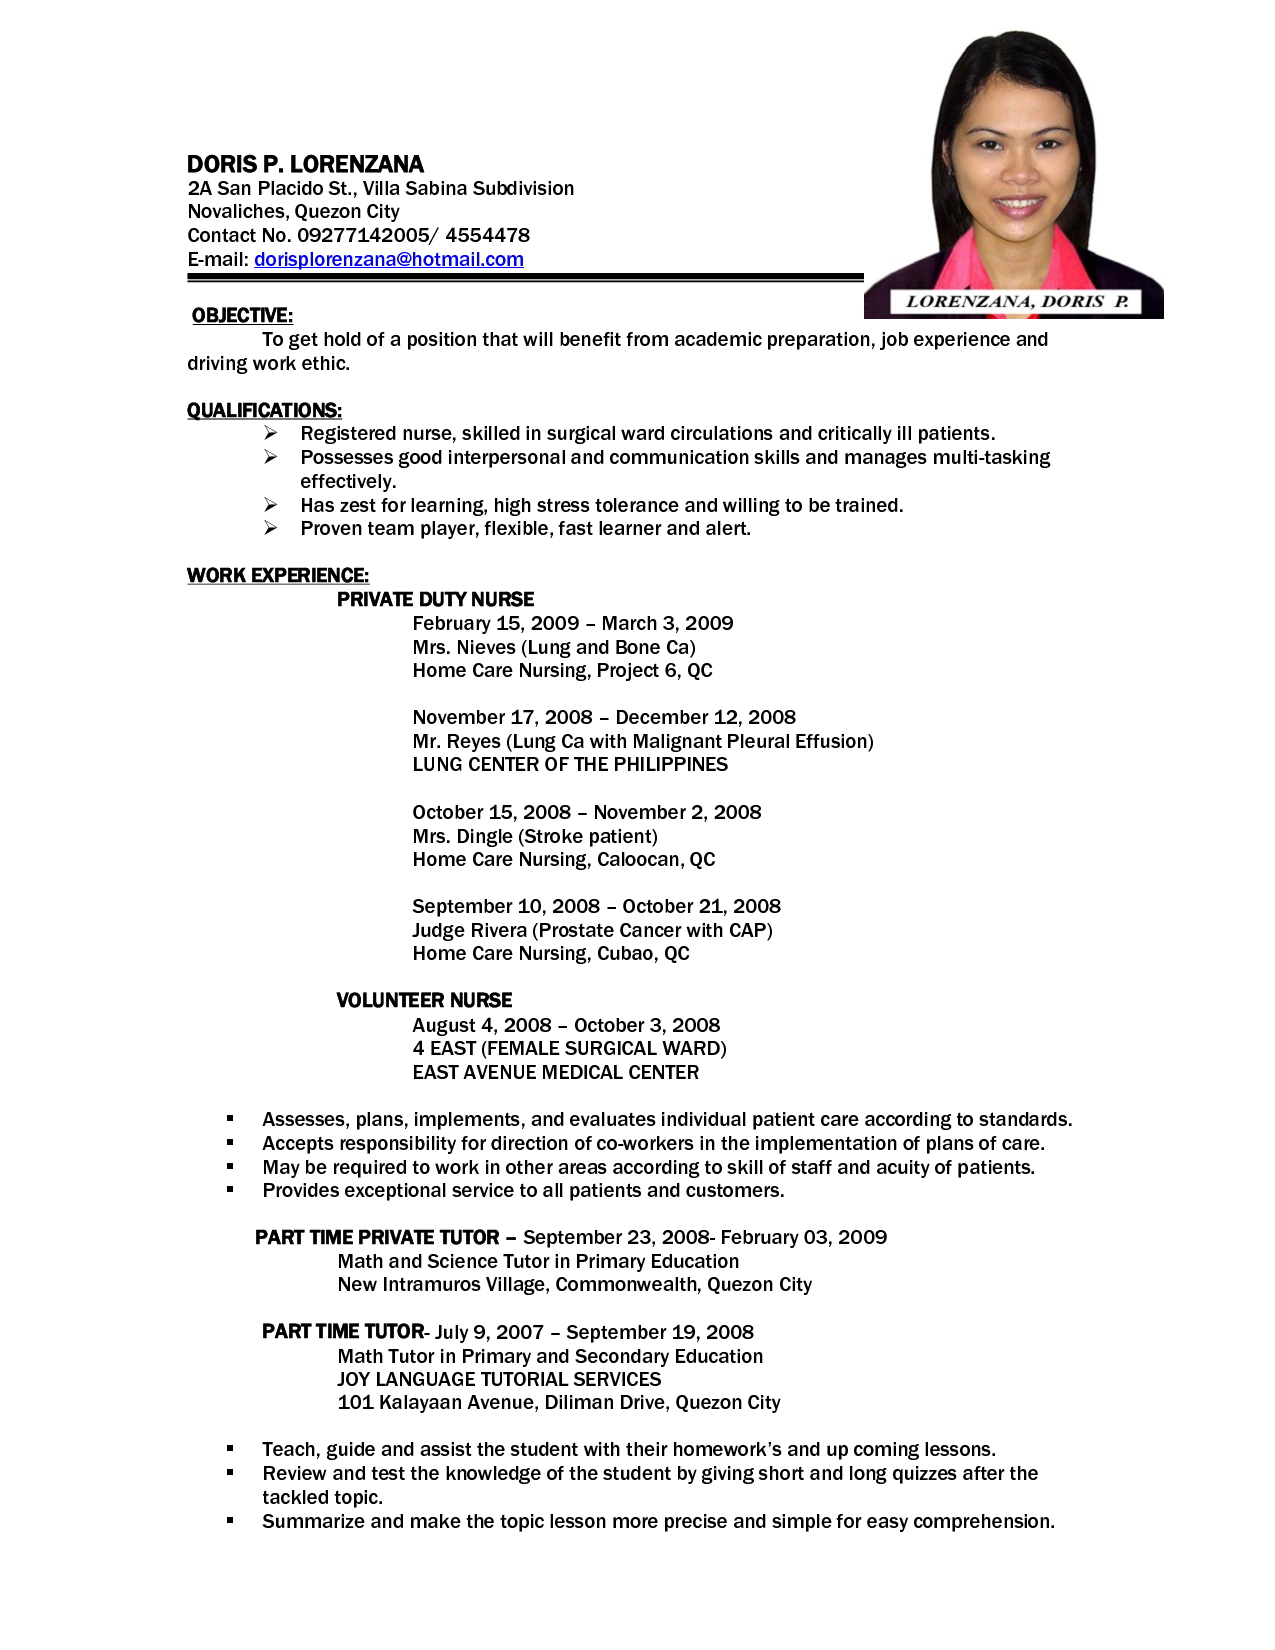 Resume examples word doc